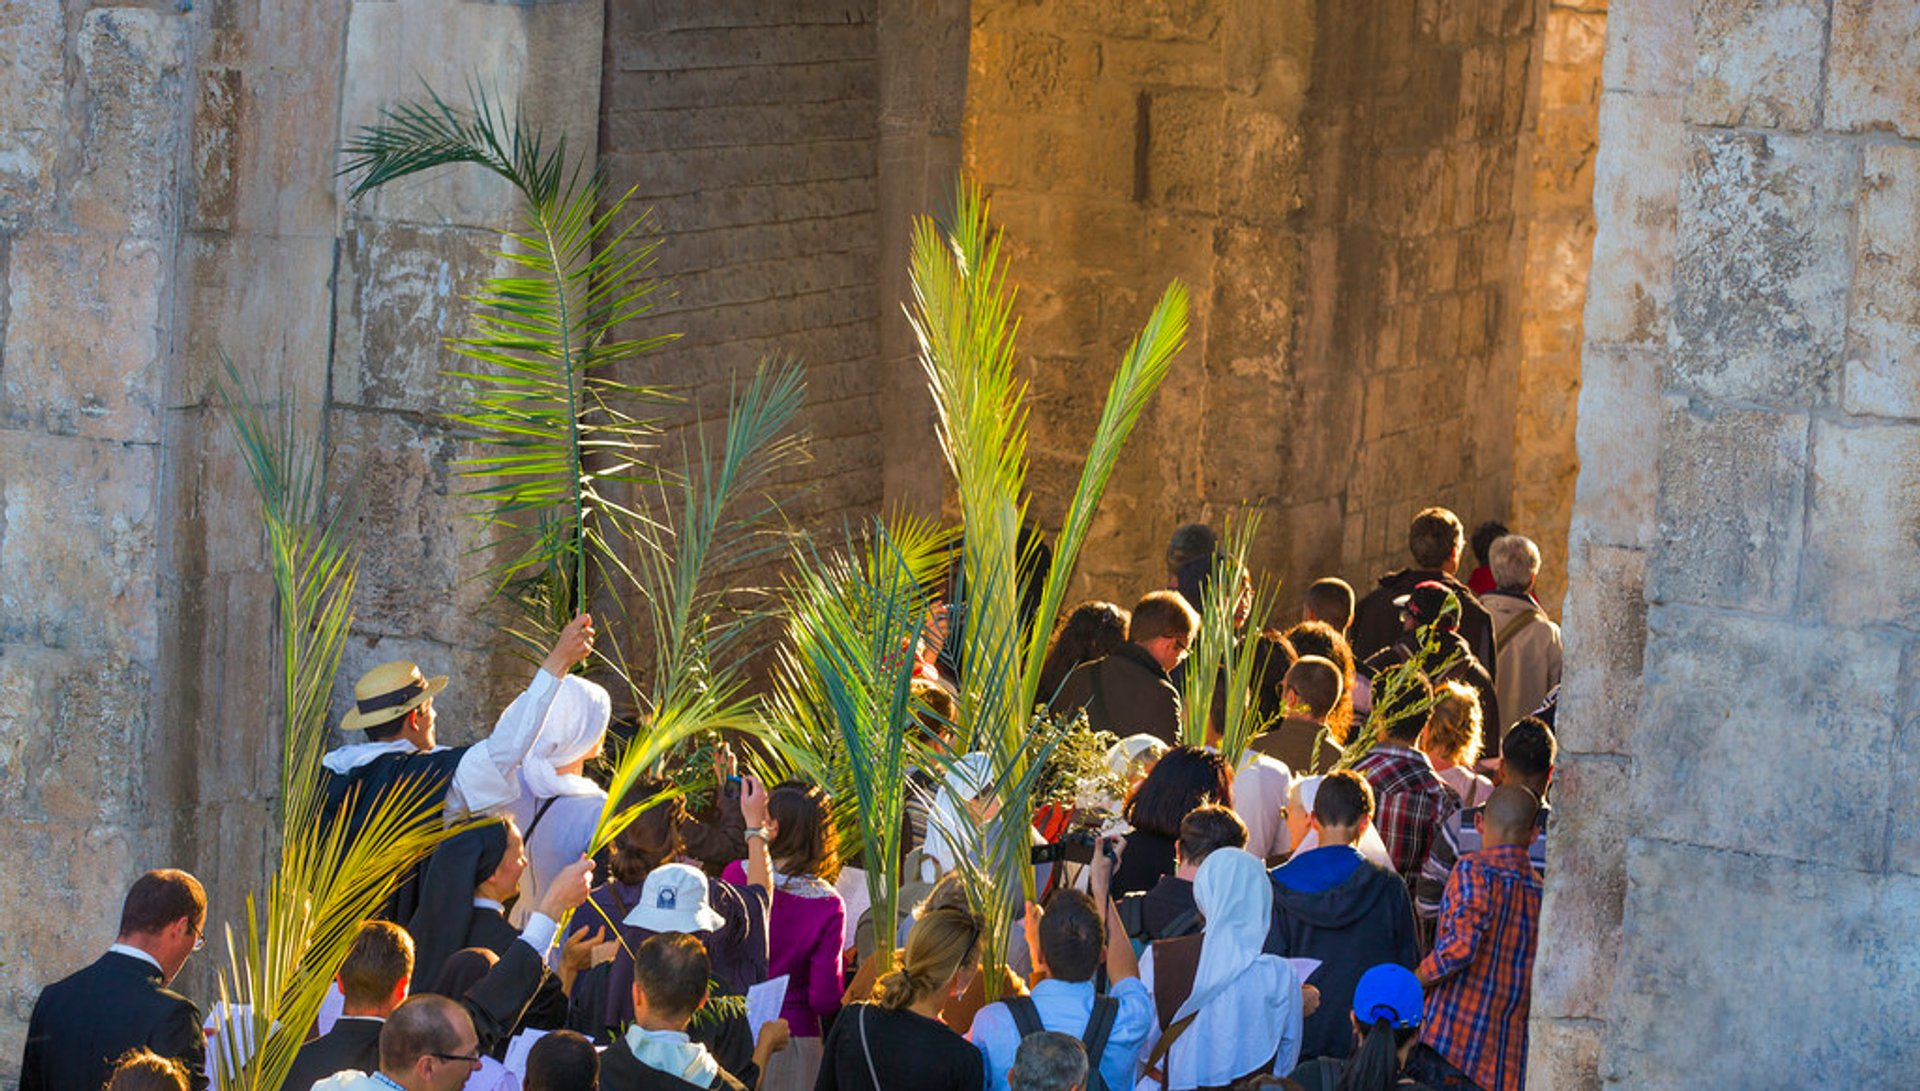 Palm Sunday 2019 in Israel - Dates & Map - photo#36